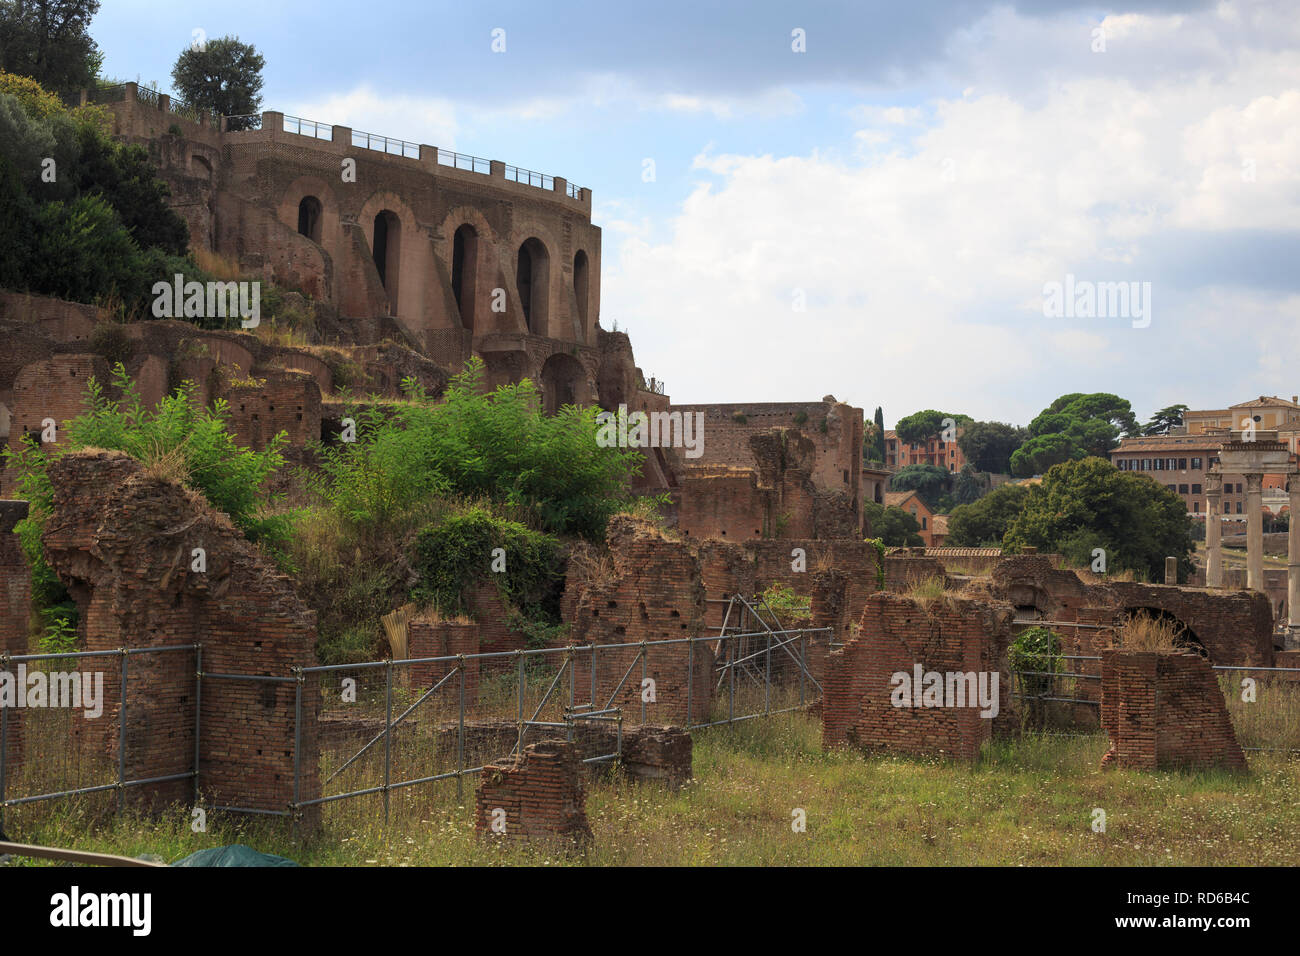 The Roman Forum (Latin: Forum Romanum), sometimes known by its original Latin name, is located between the Palatine hill and the Capitoline hill of th Stock Photo